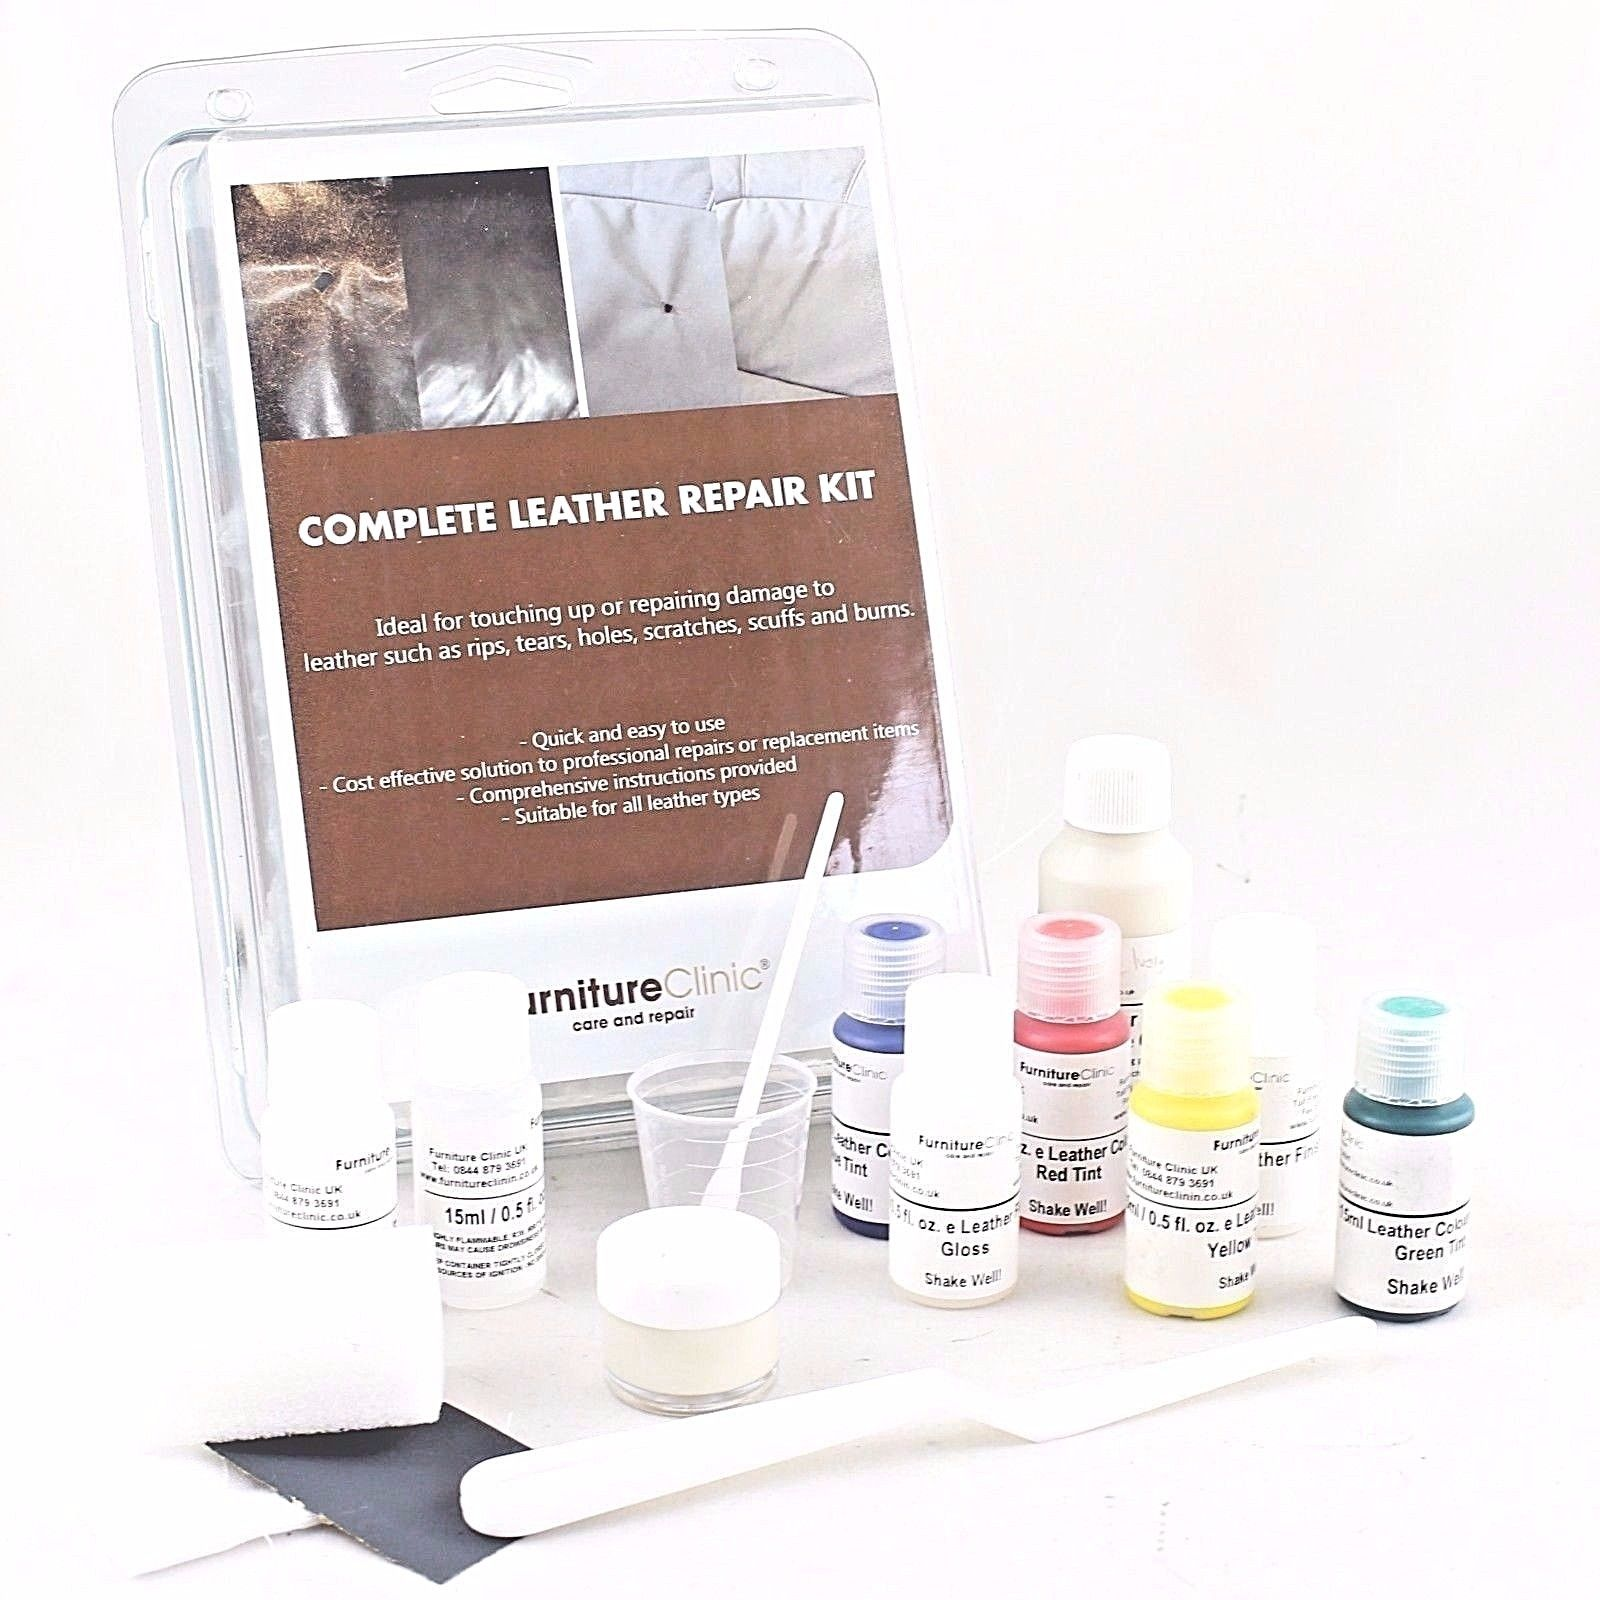 Complete Leather Repair Kit